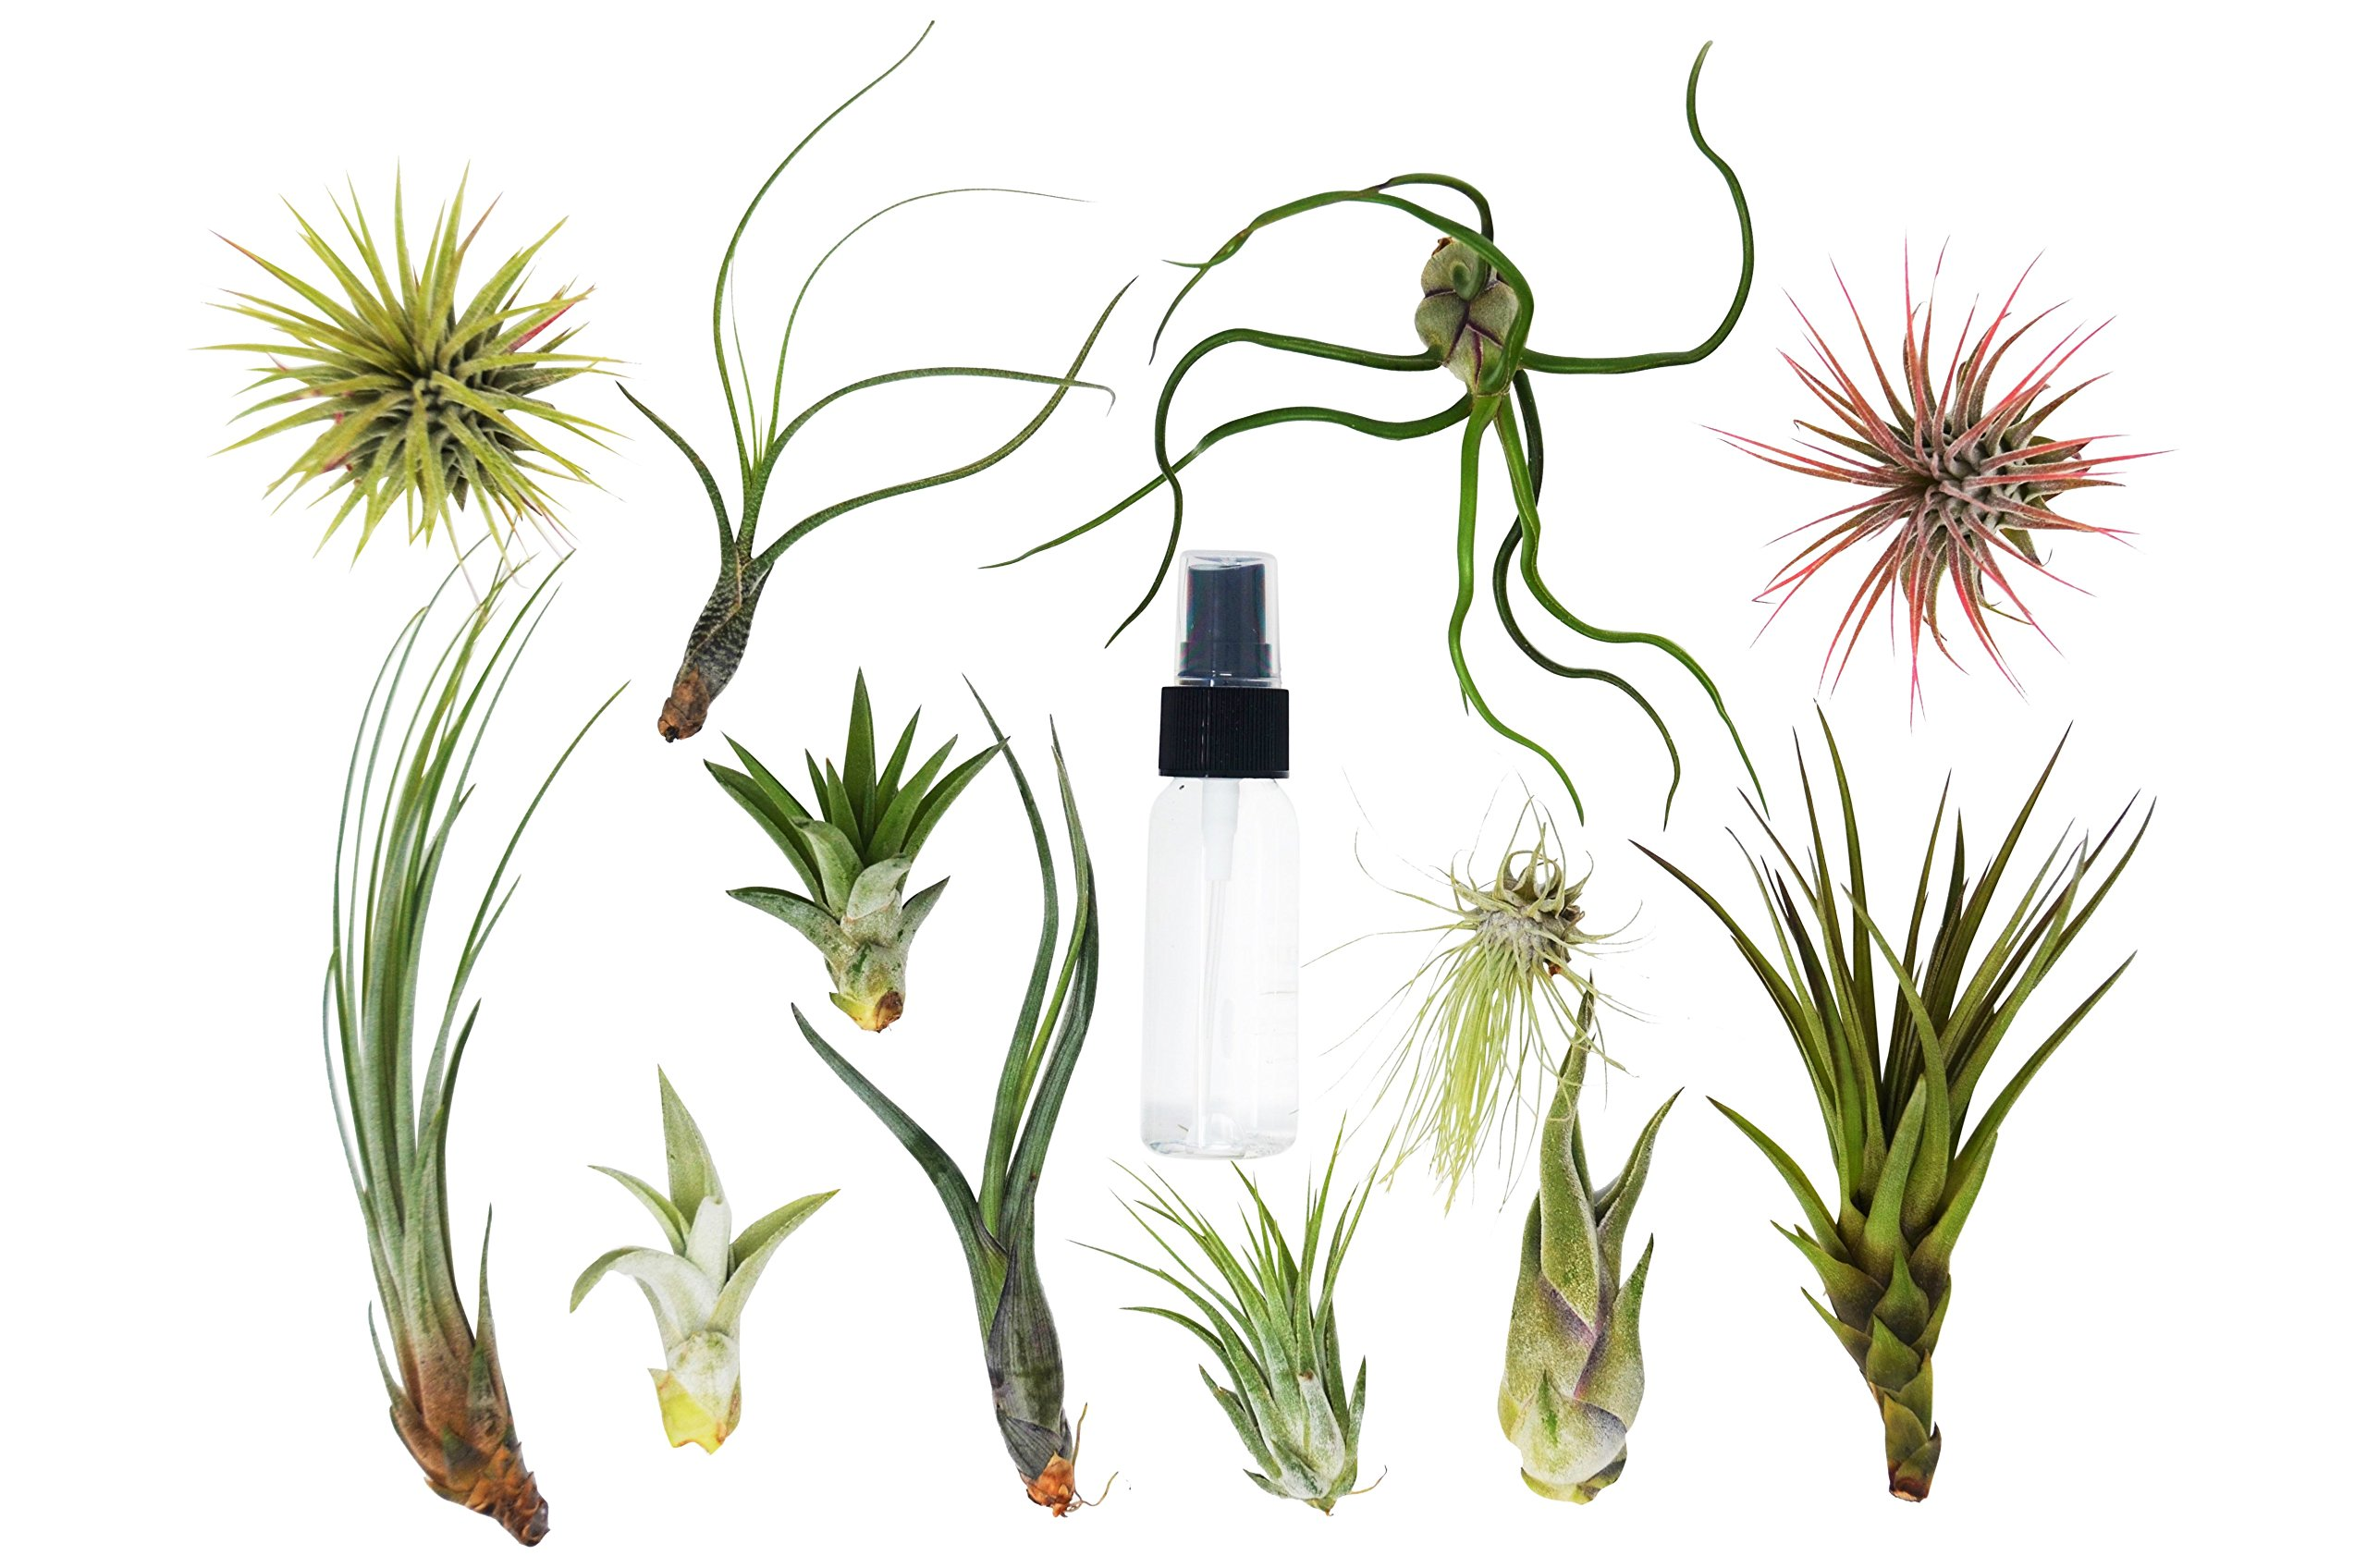 25 Bulk Air Plant Assortment w/Spray Bottle / 12 Different Plant Varieties/Up to 7'' Large/Wholesale